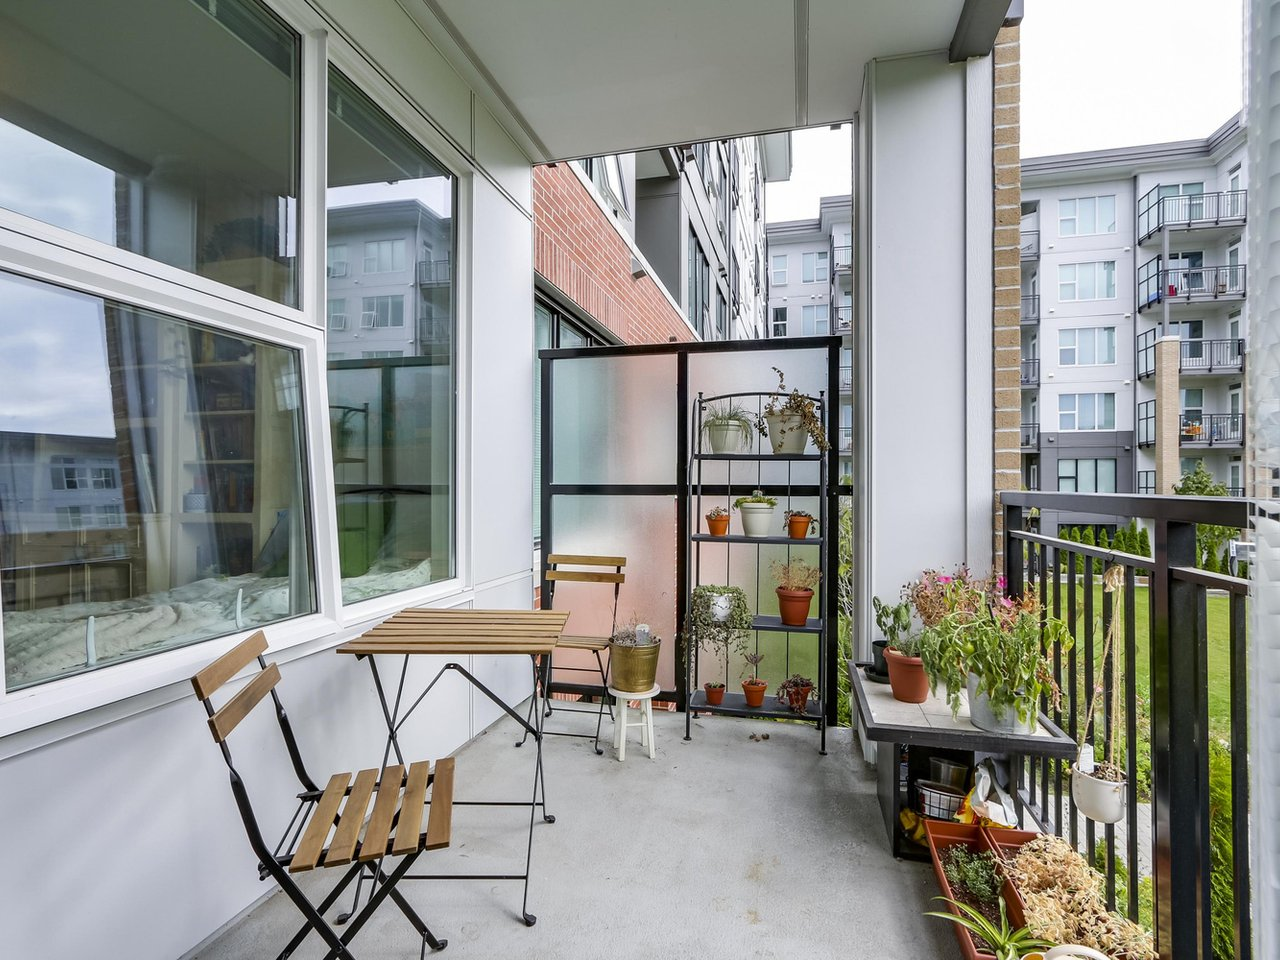 Balcony - West Cambie - 9388 Tomicki Avenue, Richmond, BC, Canada